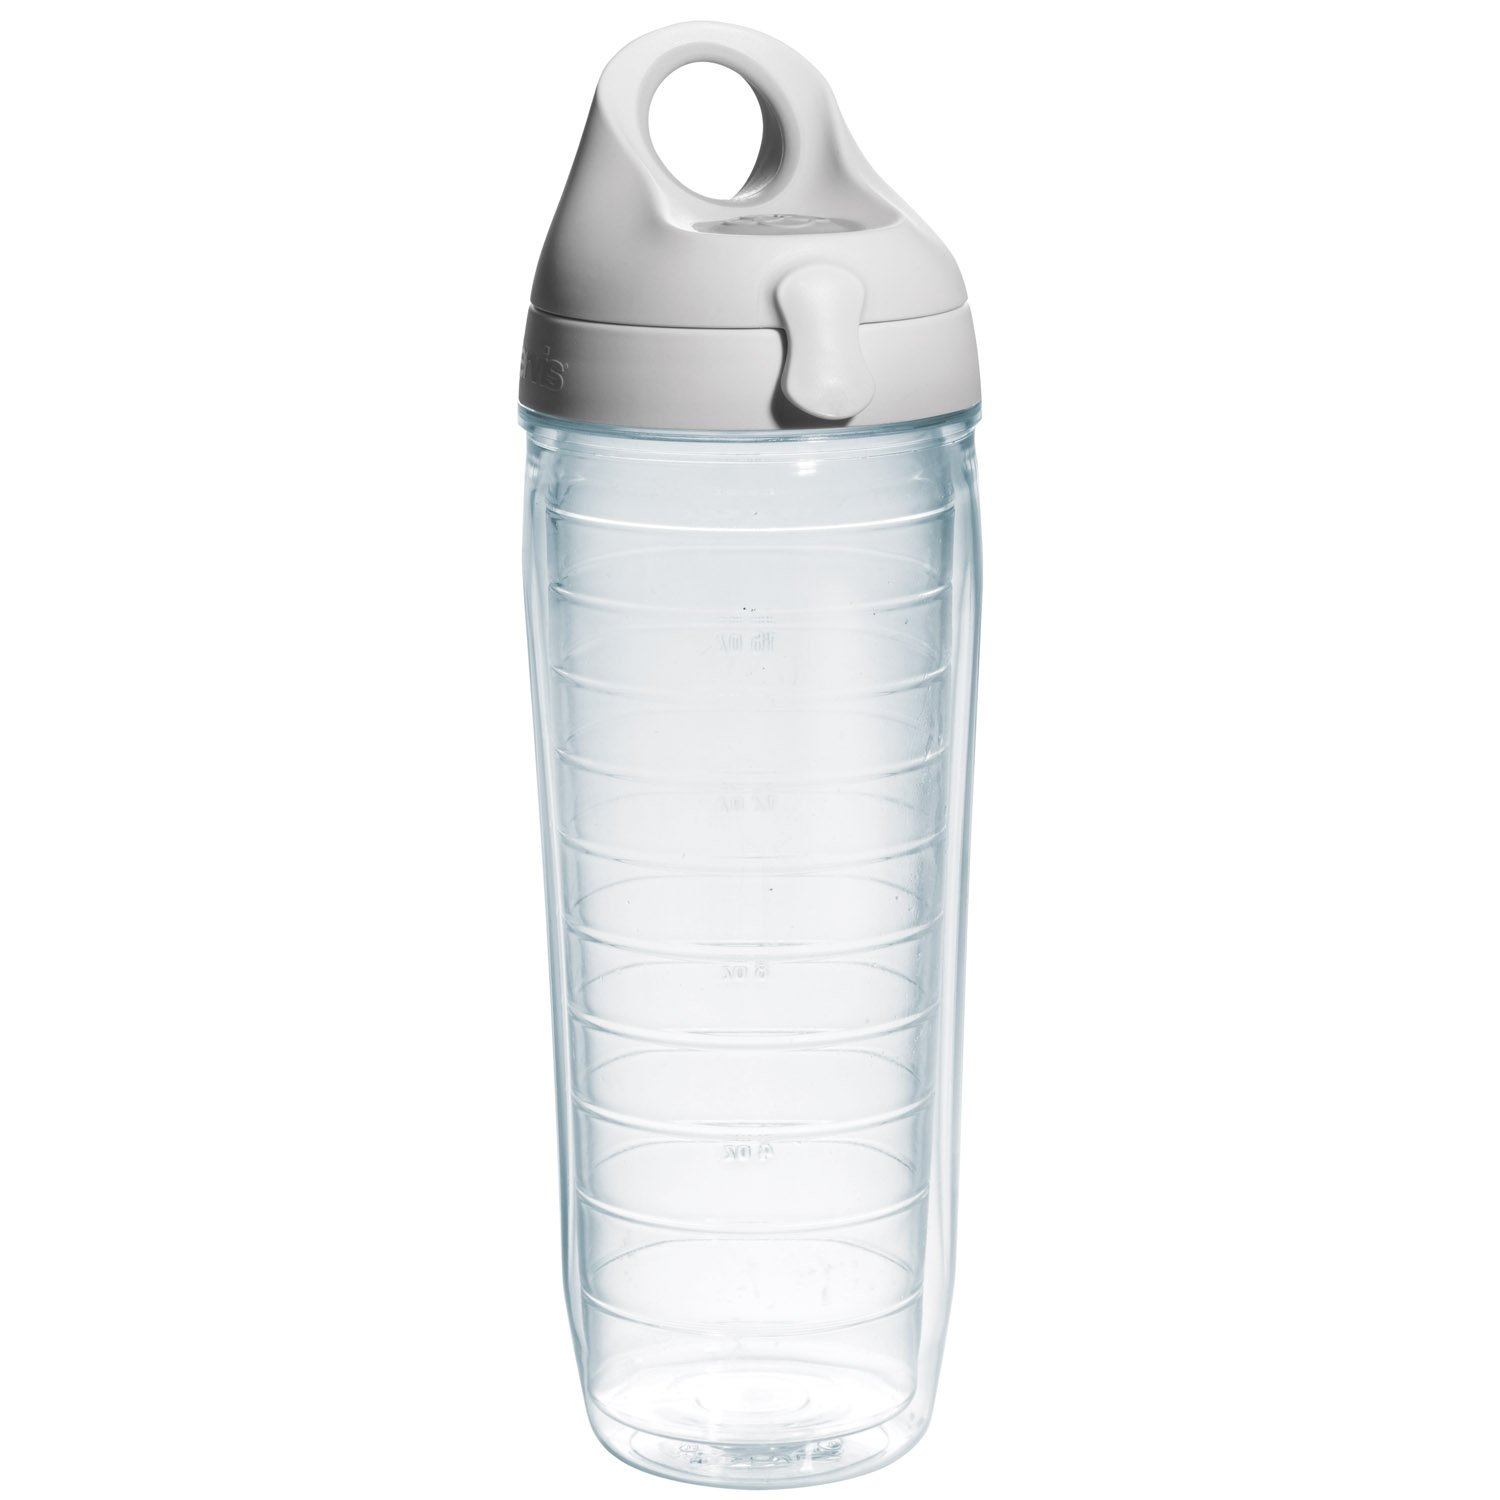 Tervis Water Bottle Review Golfblogger Golf Blog